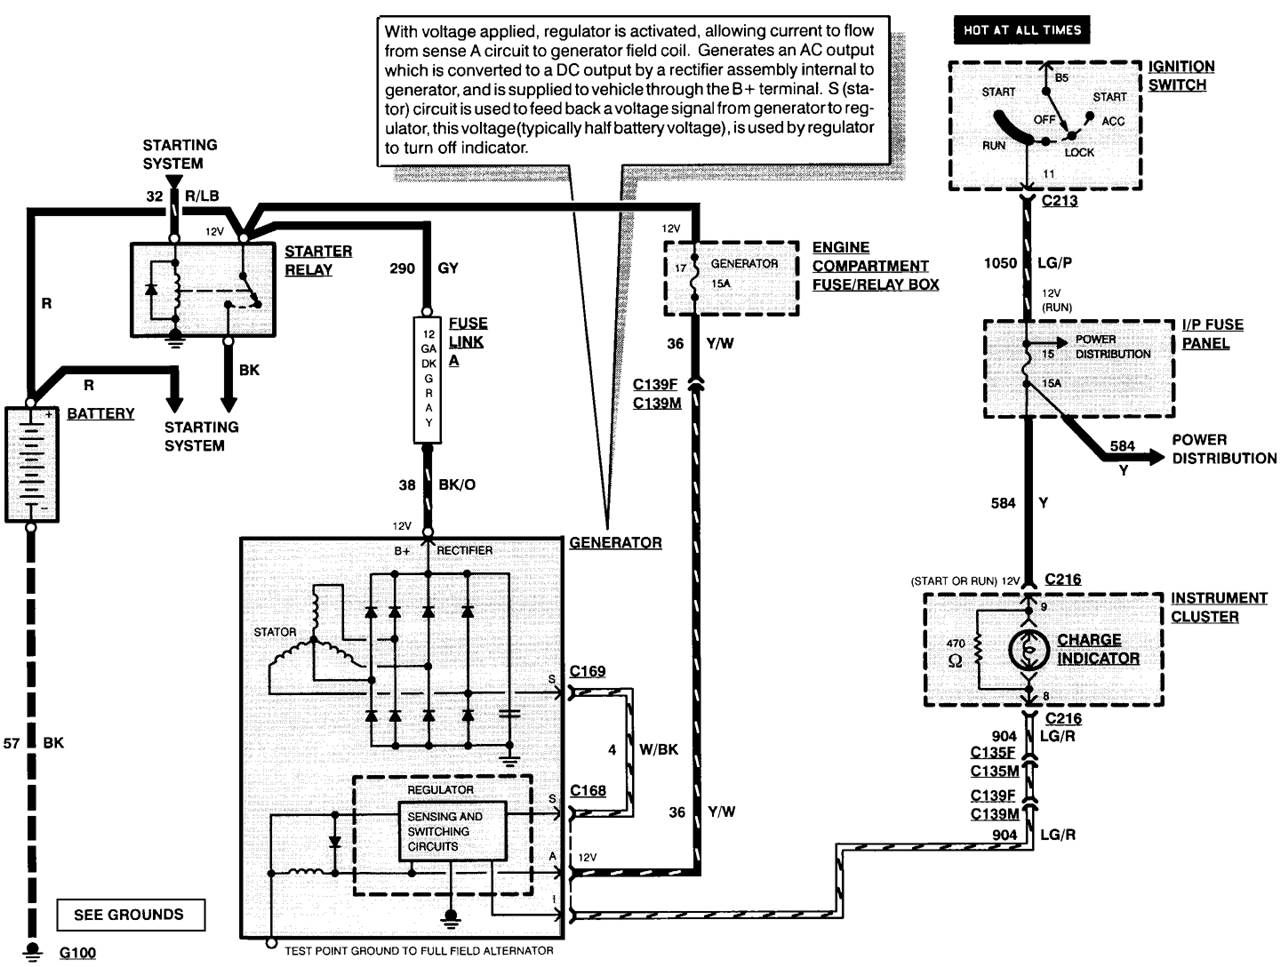 Ford Alternator Wiring Diagrams | Carsut - Understand cars and drive ...